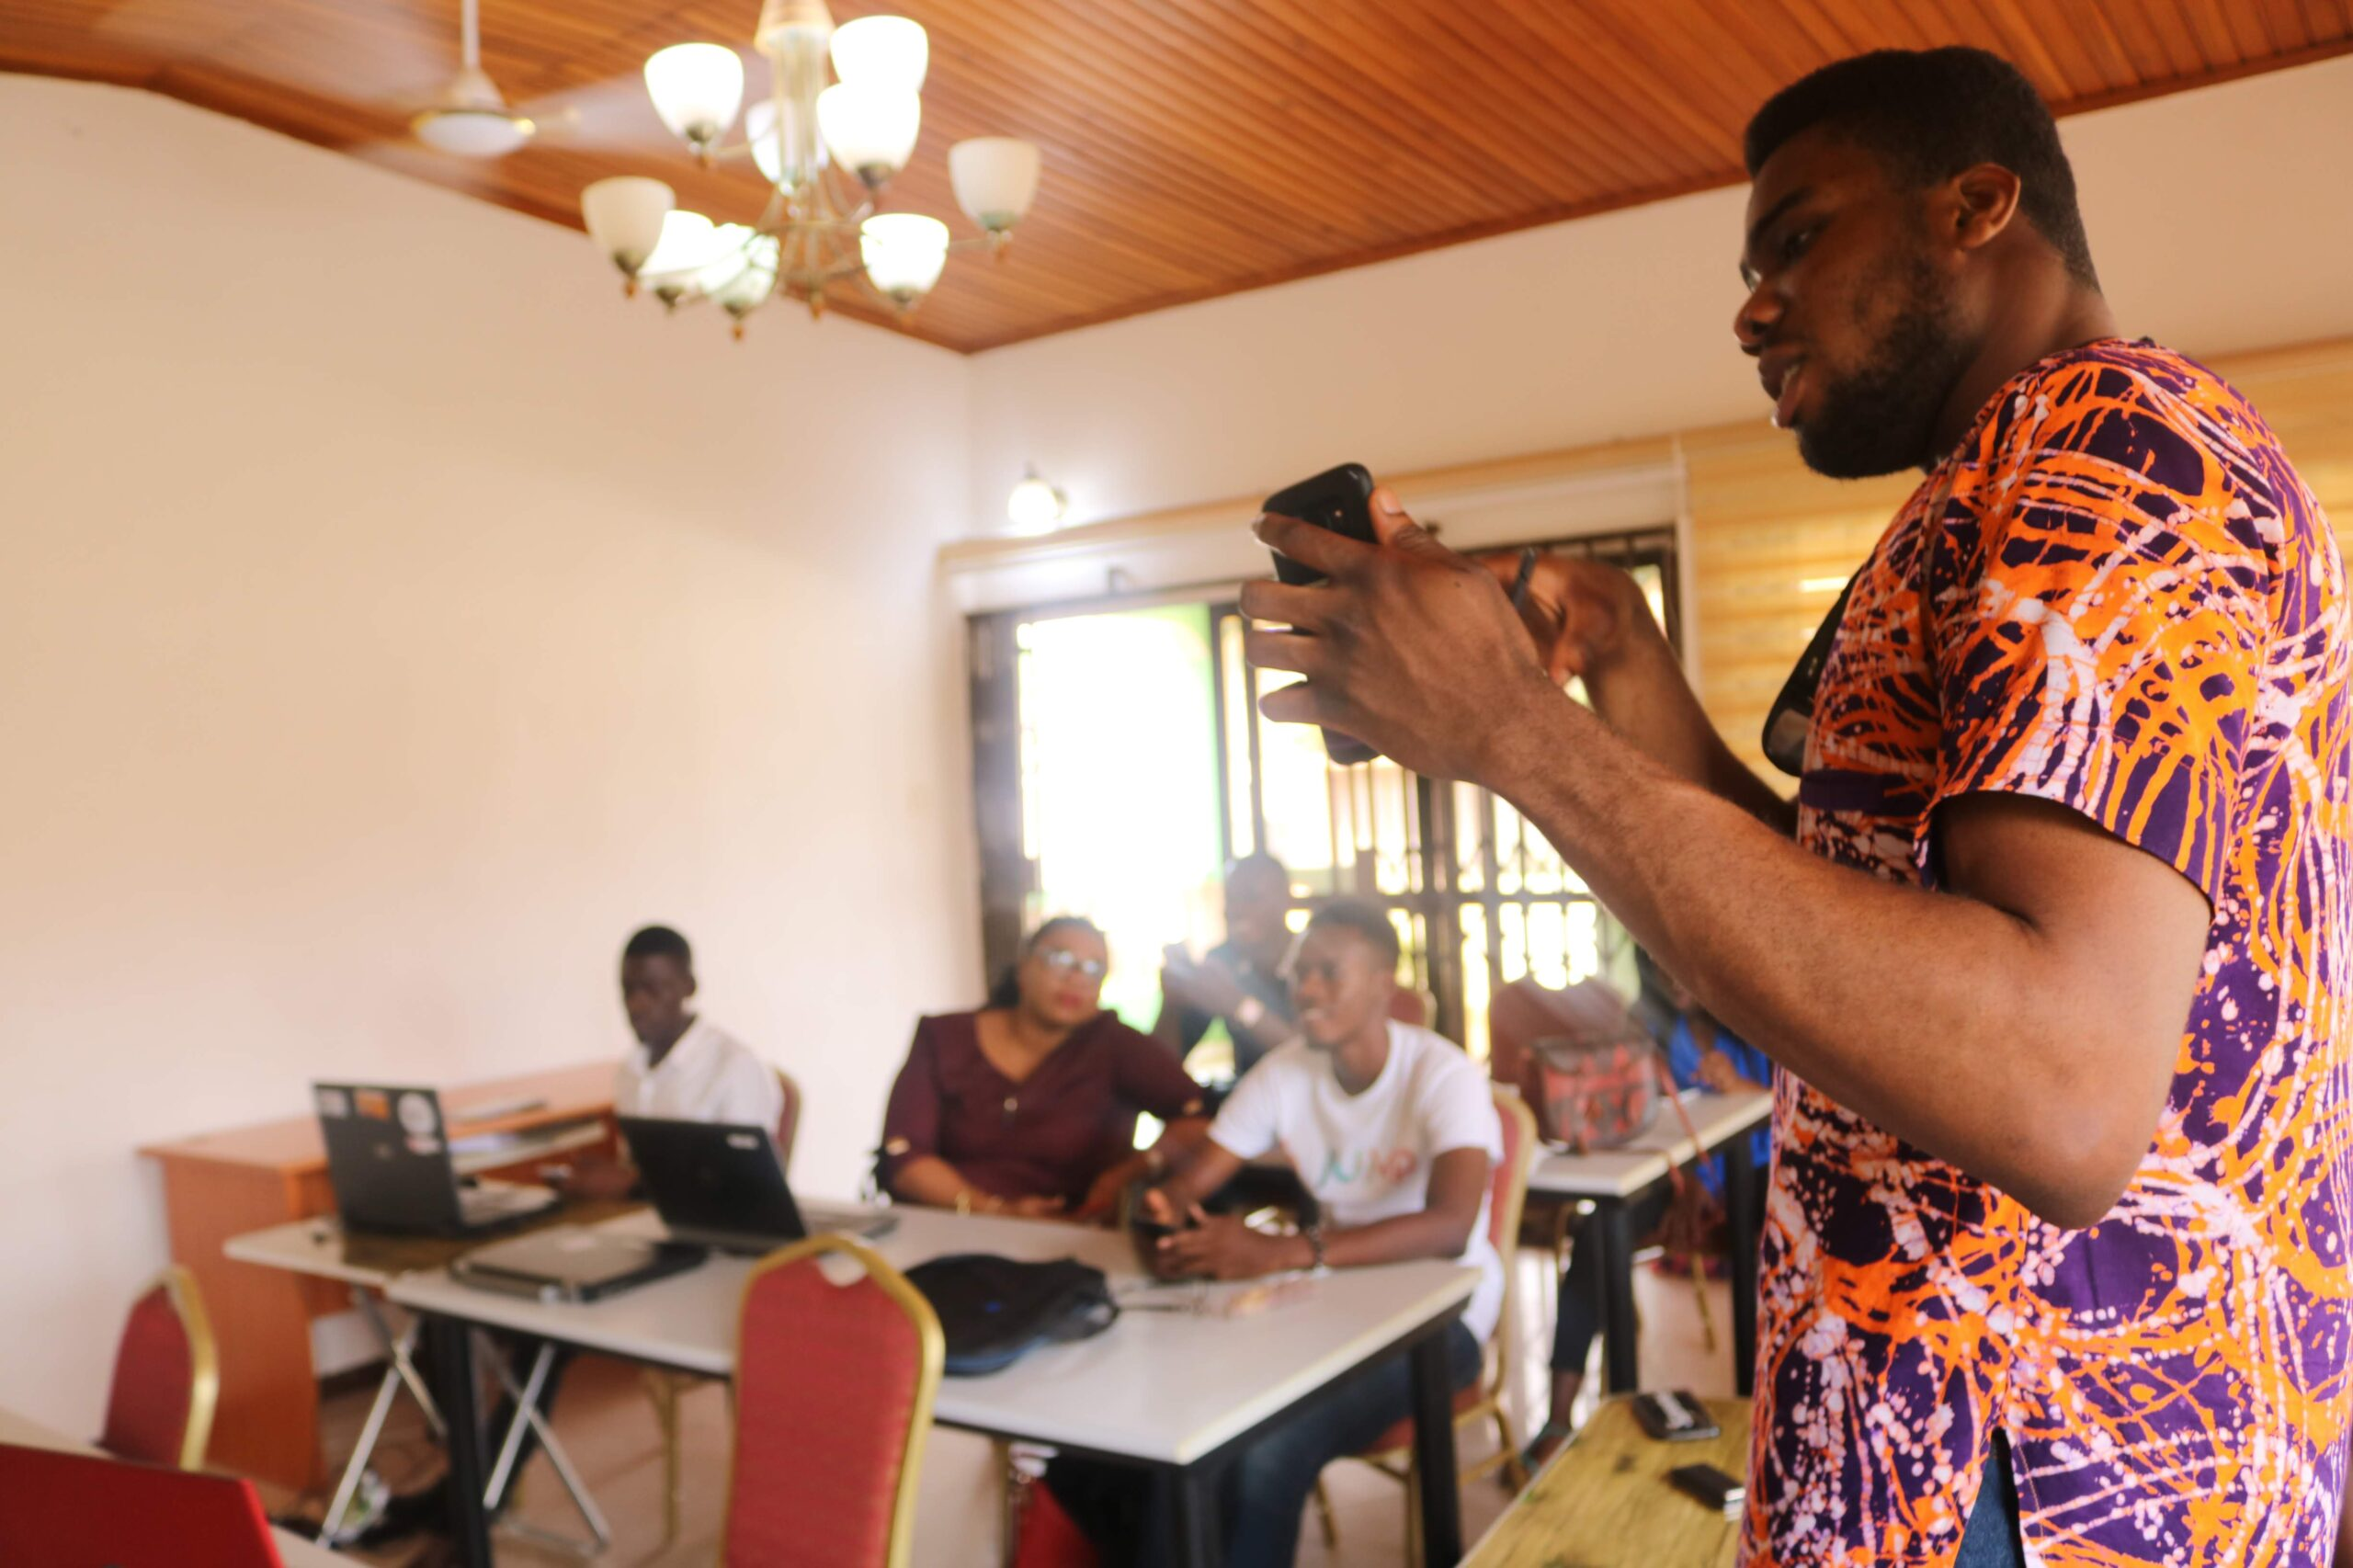 Teaching Africans How To Code With Smartphones, Not Computers